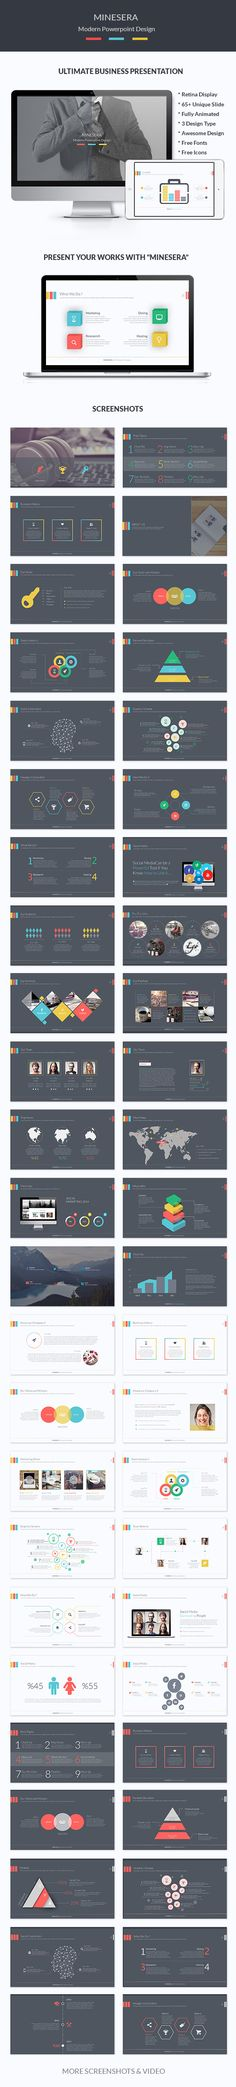 Minesera Business Powerpoint Presentation Template #powerpoint #powerpointtemplate #presentation Download: http://graphicriver.net/item/minesera-business-powerpoint-presentation/9690677?ref=ksioks